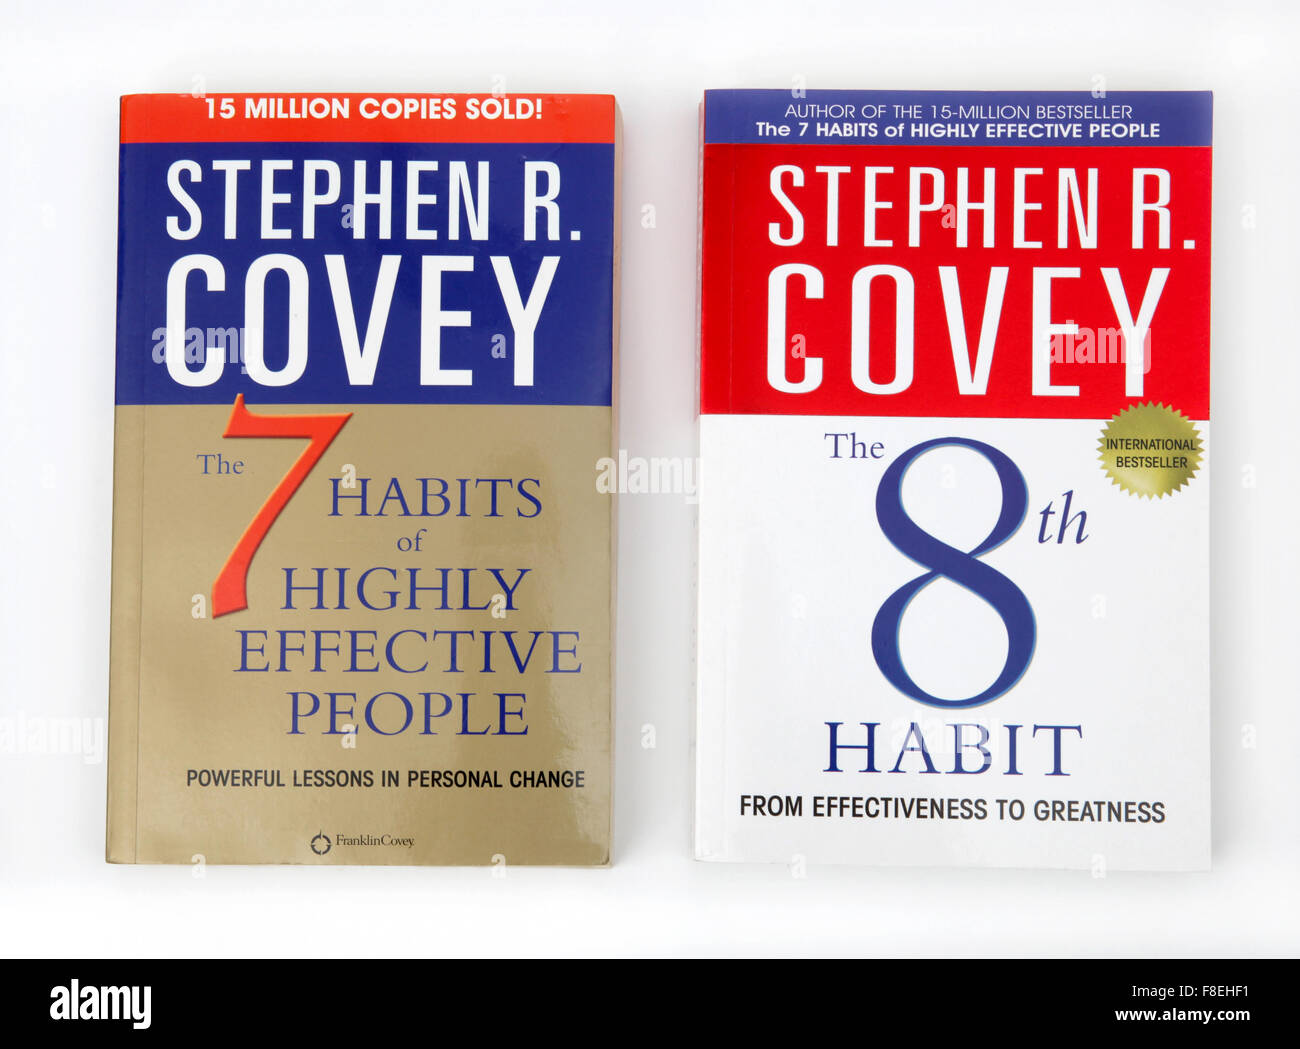 Two book - The 7 Habits of Highly Effective People and The 8th Habit From Effectiveness to Greatness both by Stephen - Stock Image